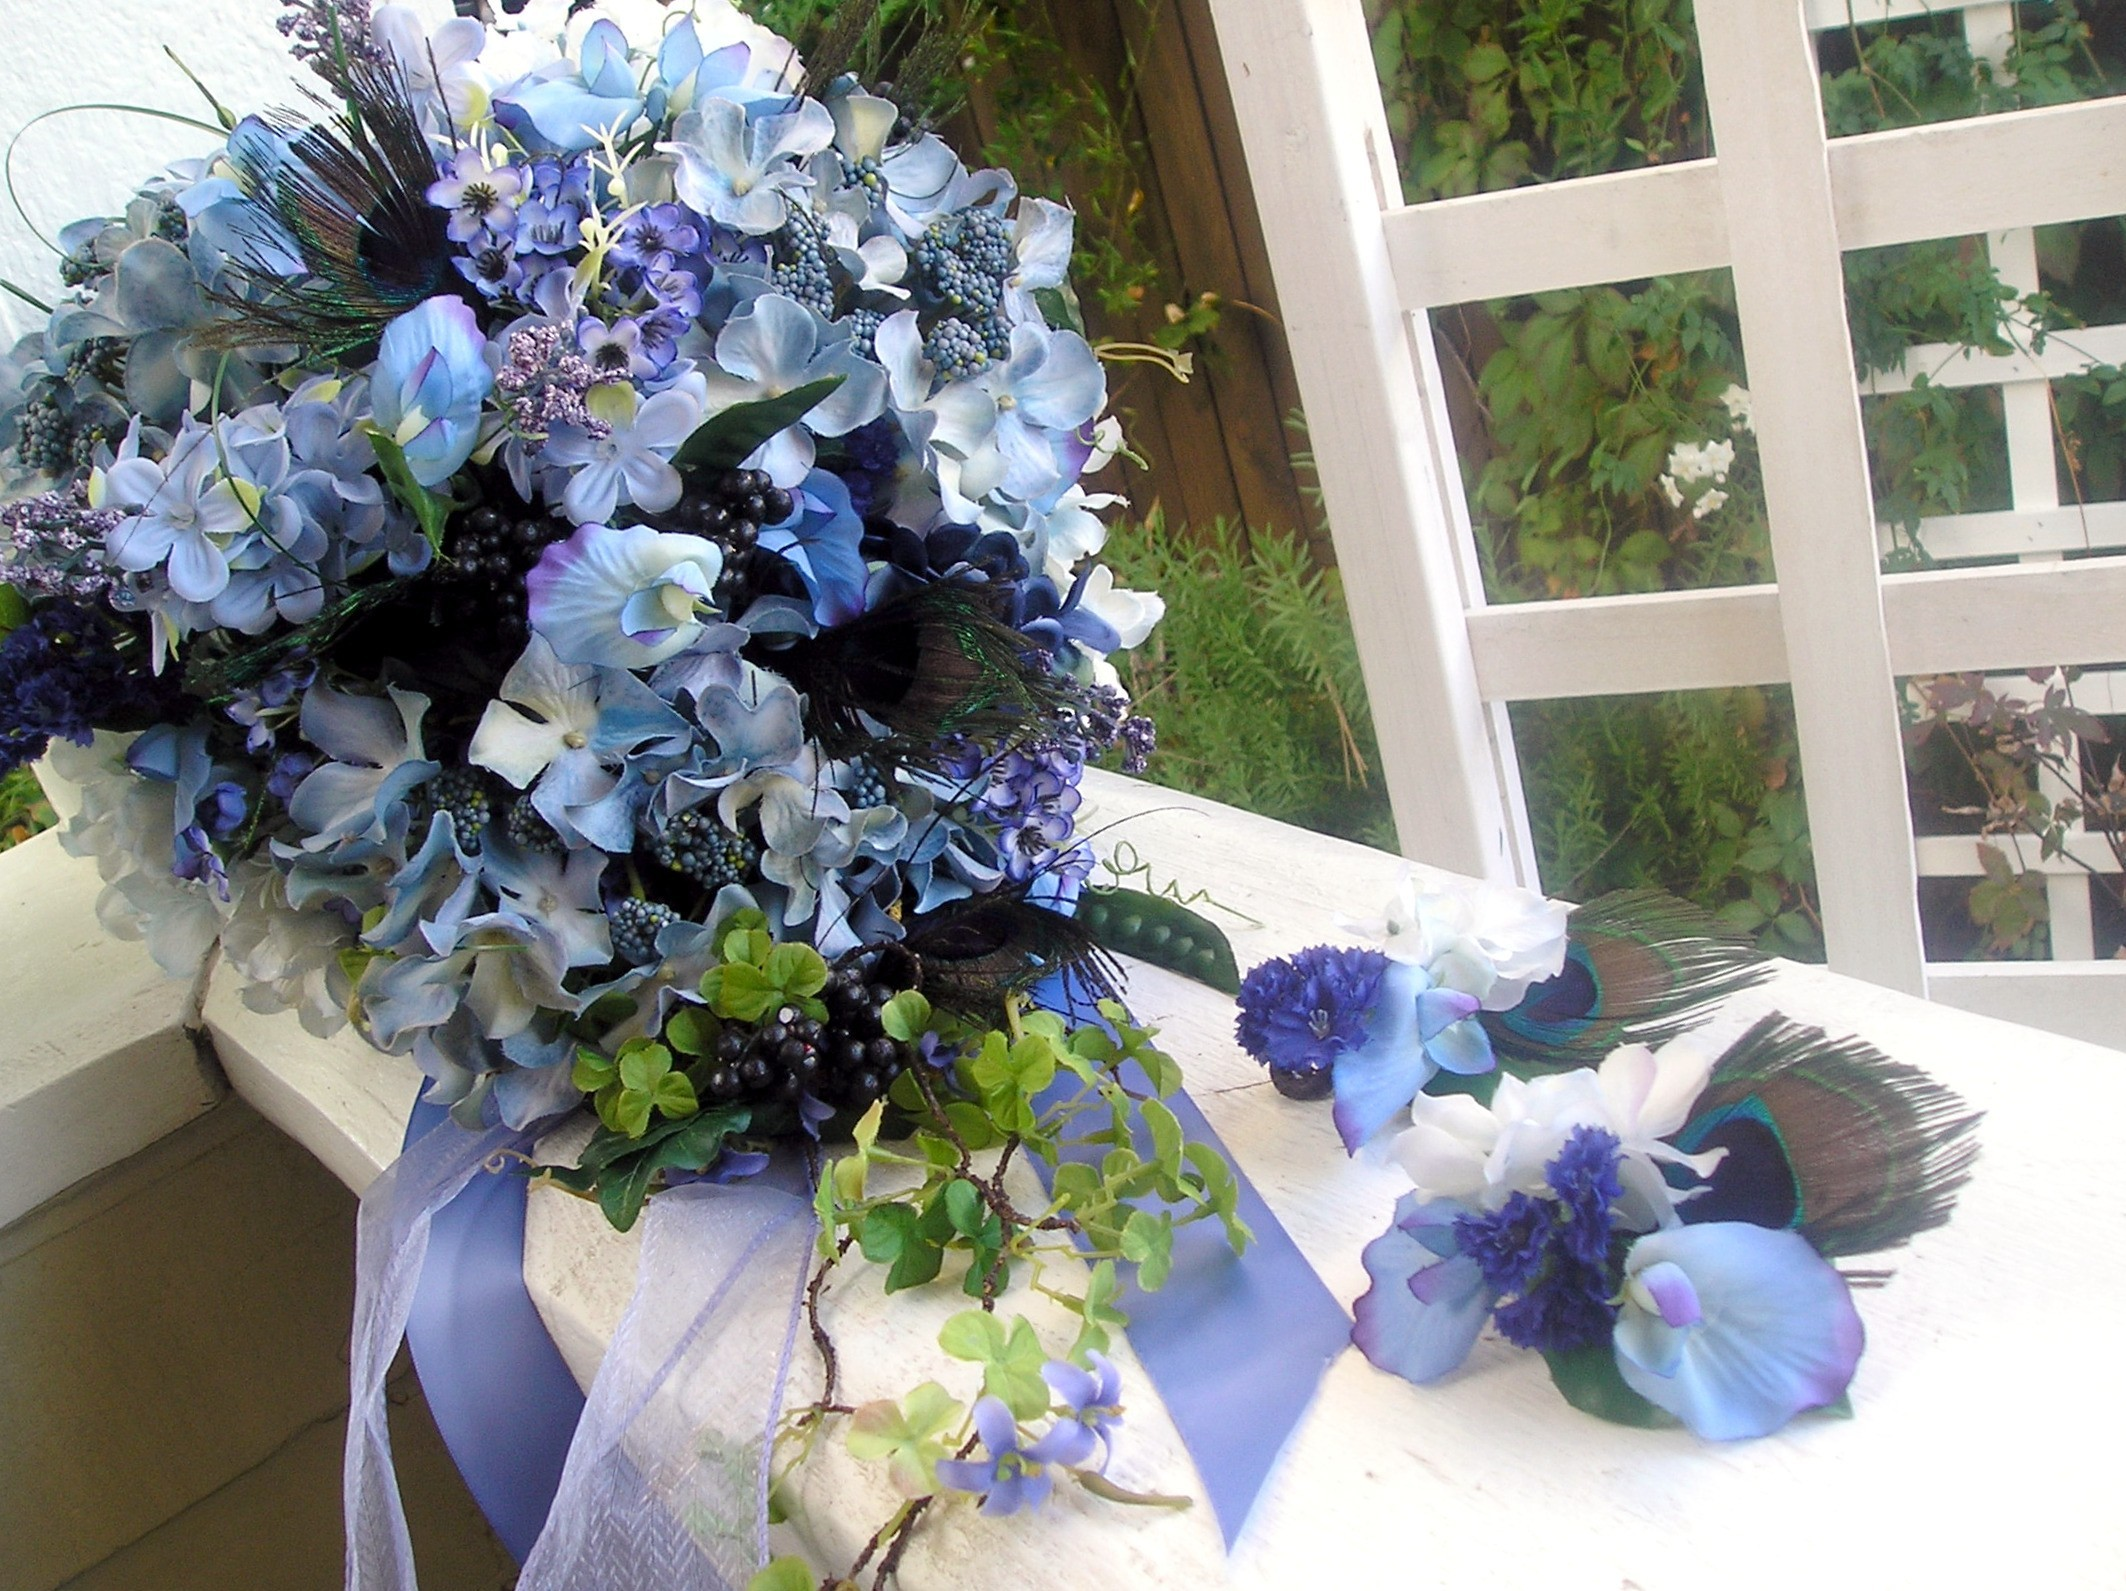 Beauty, Flowers & Decor, purple, blue, green, Feathers, Bride Bouquets, Boutonnieres, Flowers, Bouquet, Bridal, Boutonniere, Weddings, Cascade, Peacock, Silk, Wildflowers